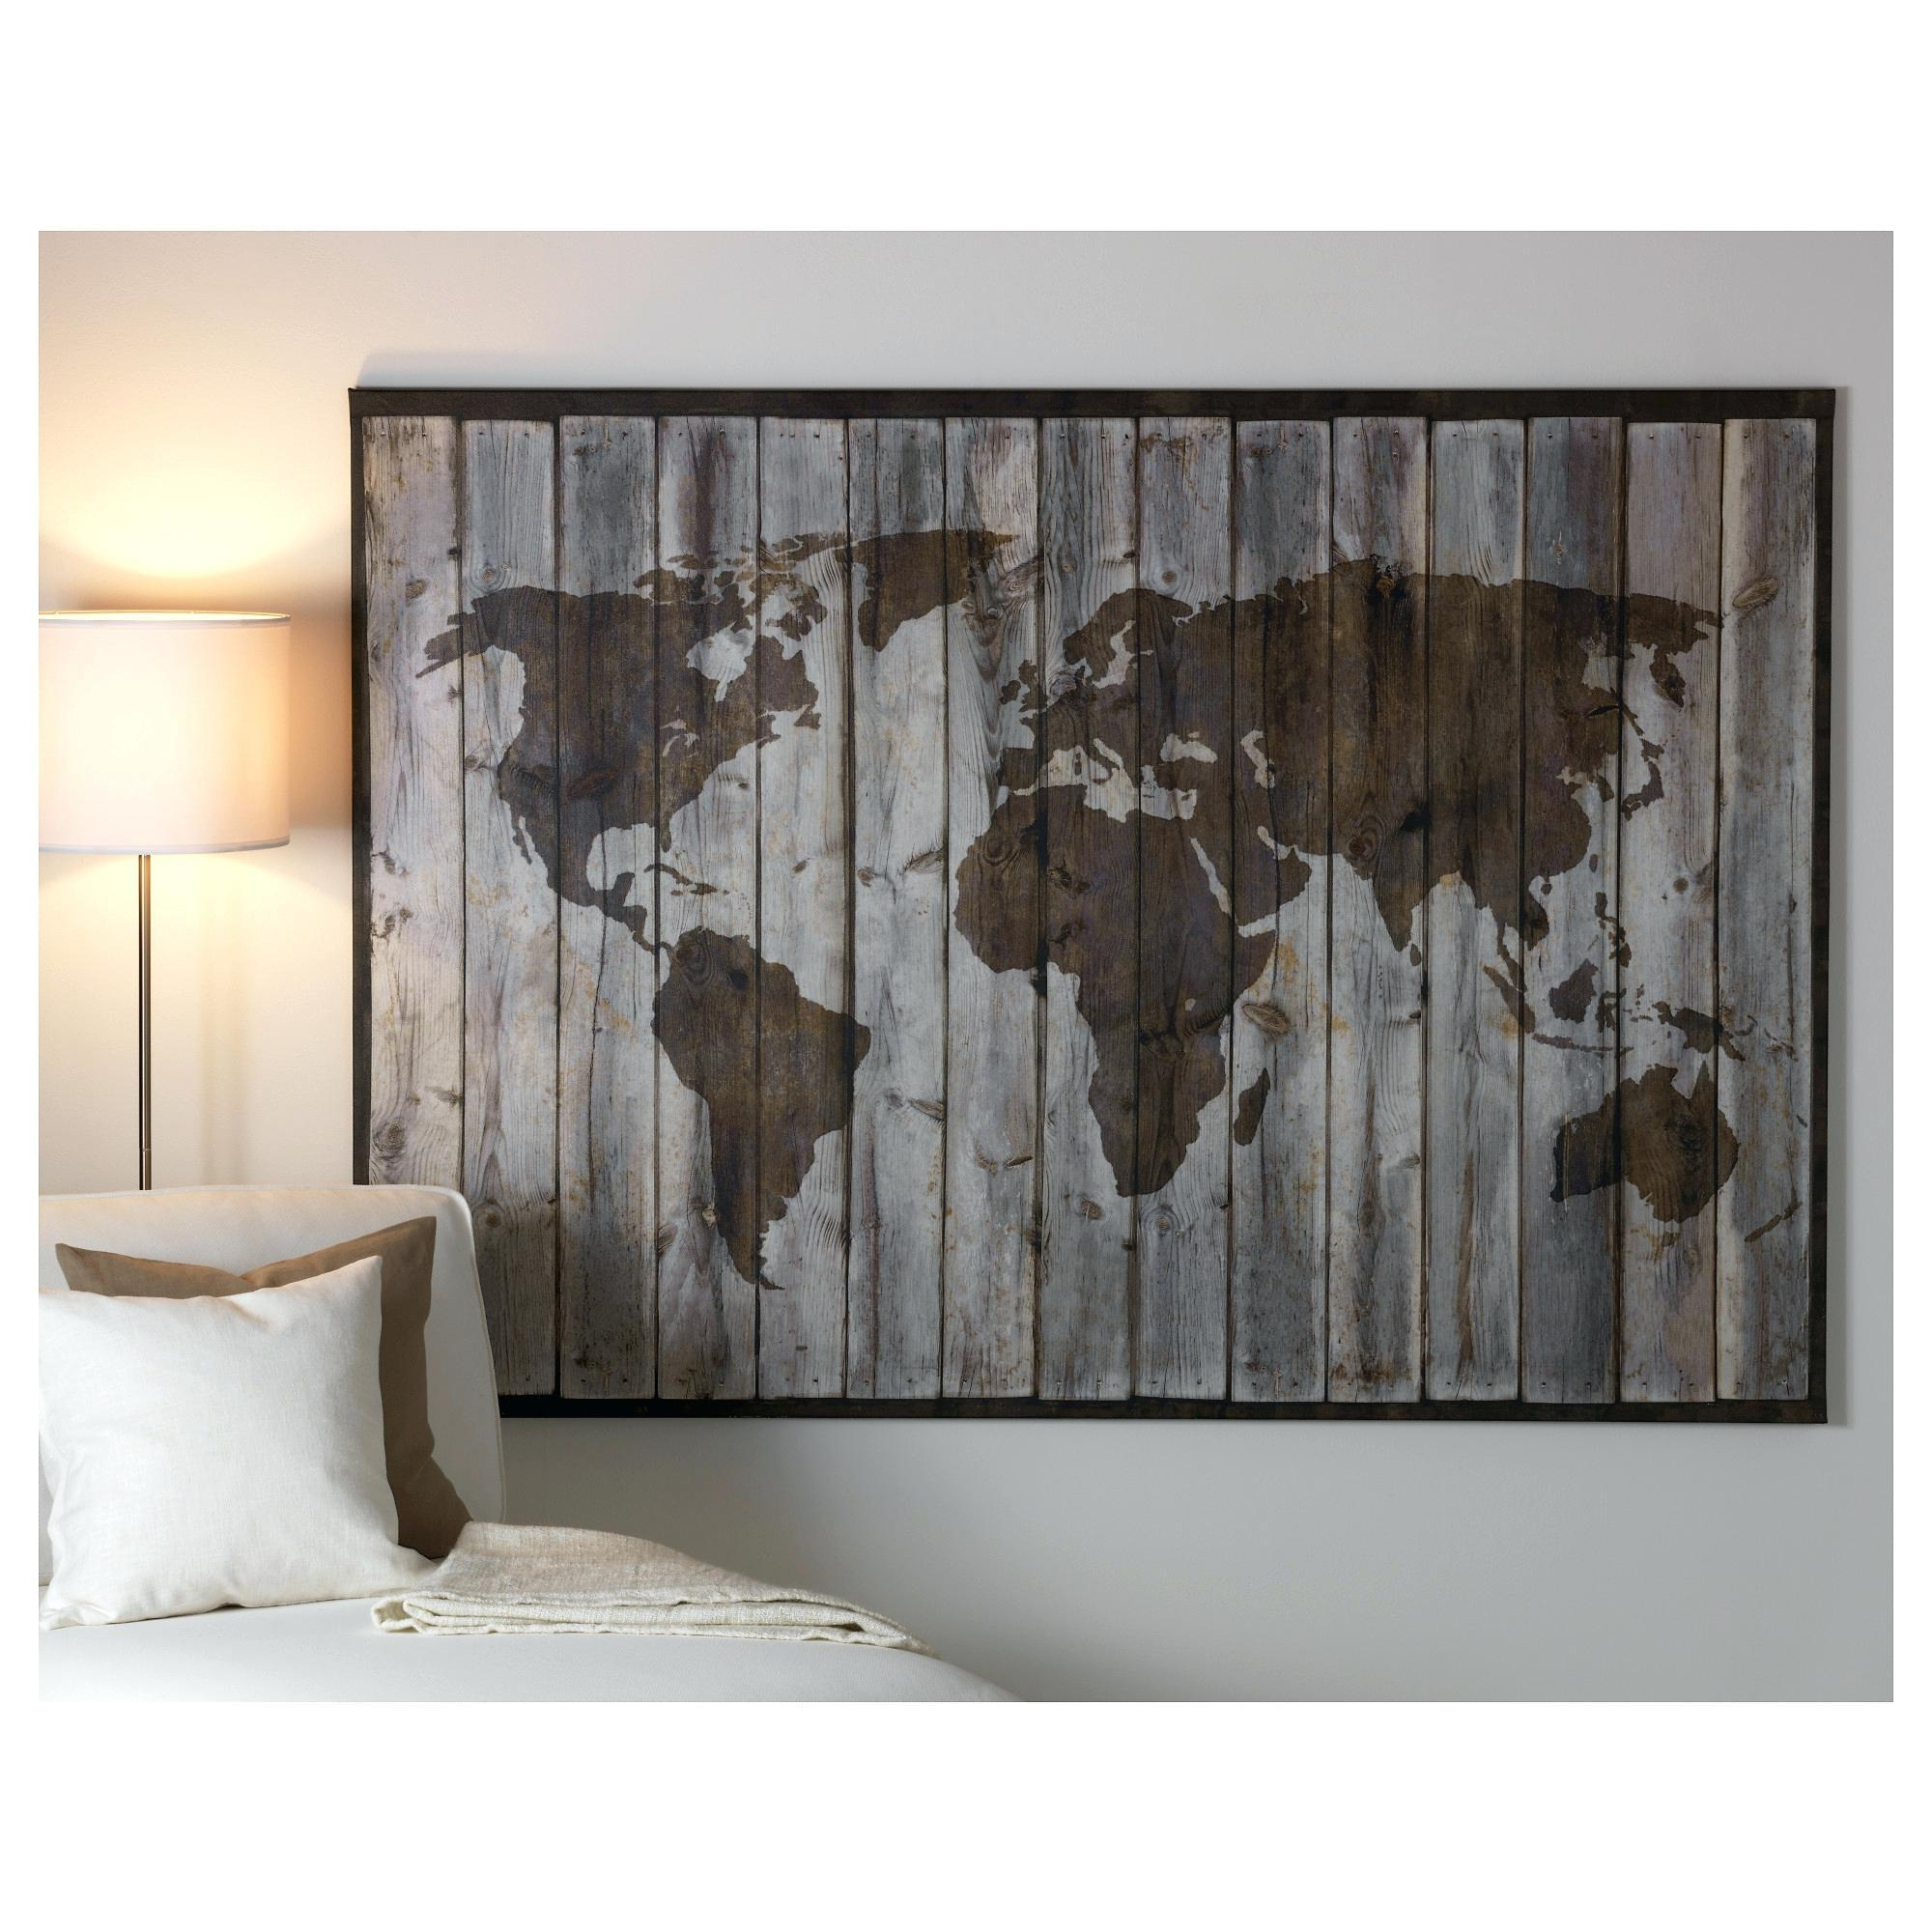 Best Ikea Wall Decoration Ready To Hang Posters Art World Map Canvas with regard to Ikea Canvas Wall Art (Image 5 of 20)